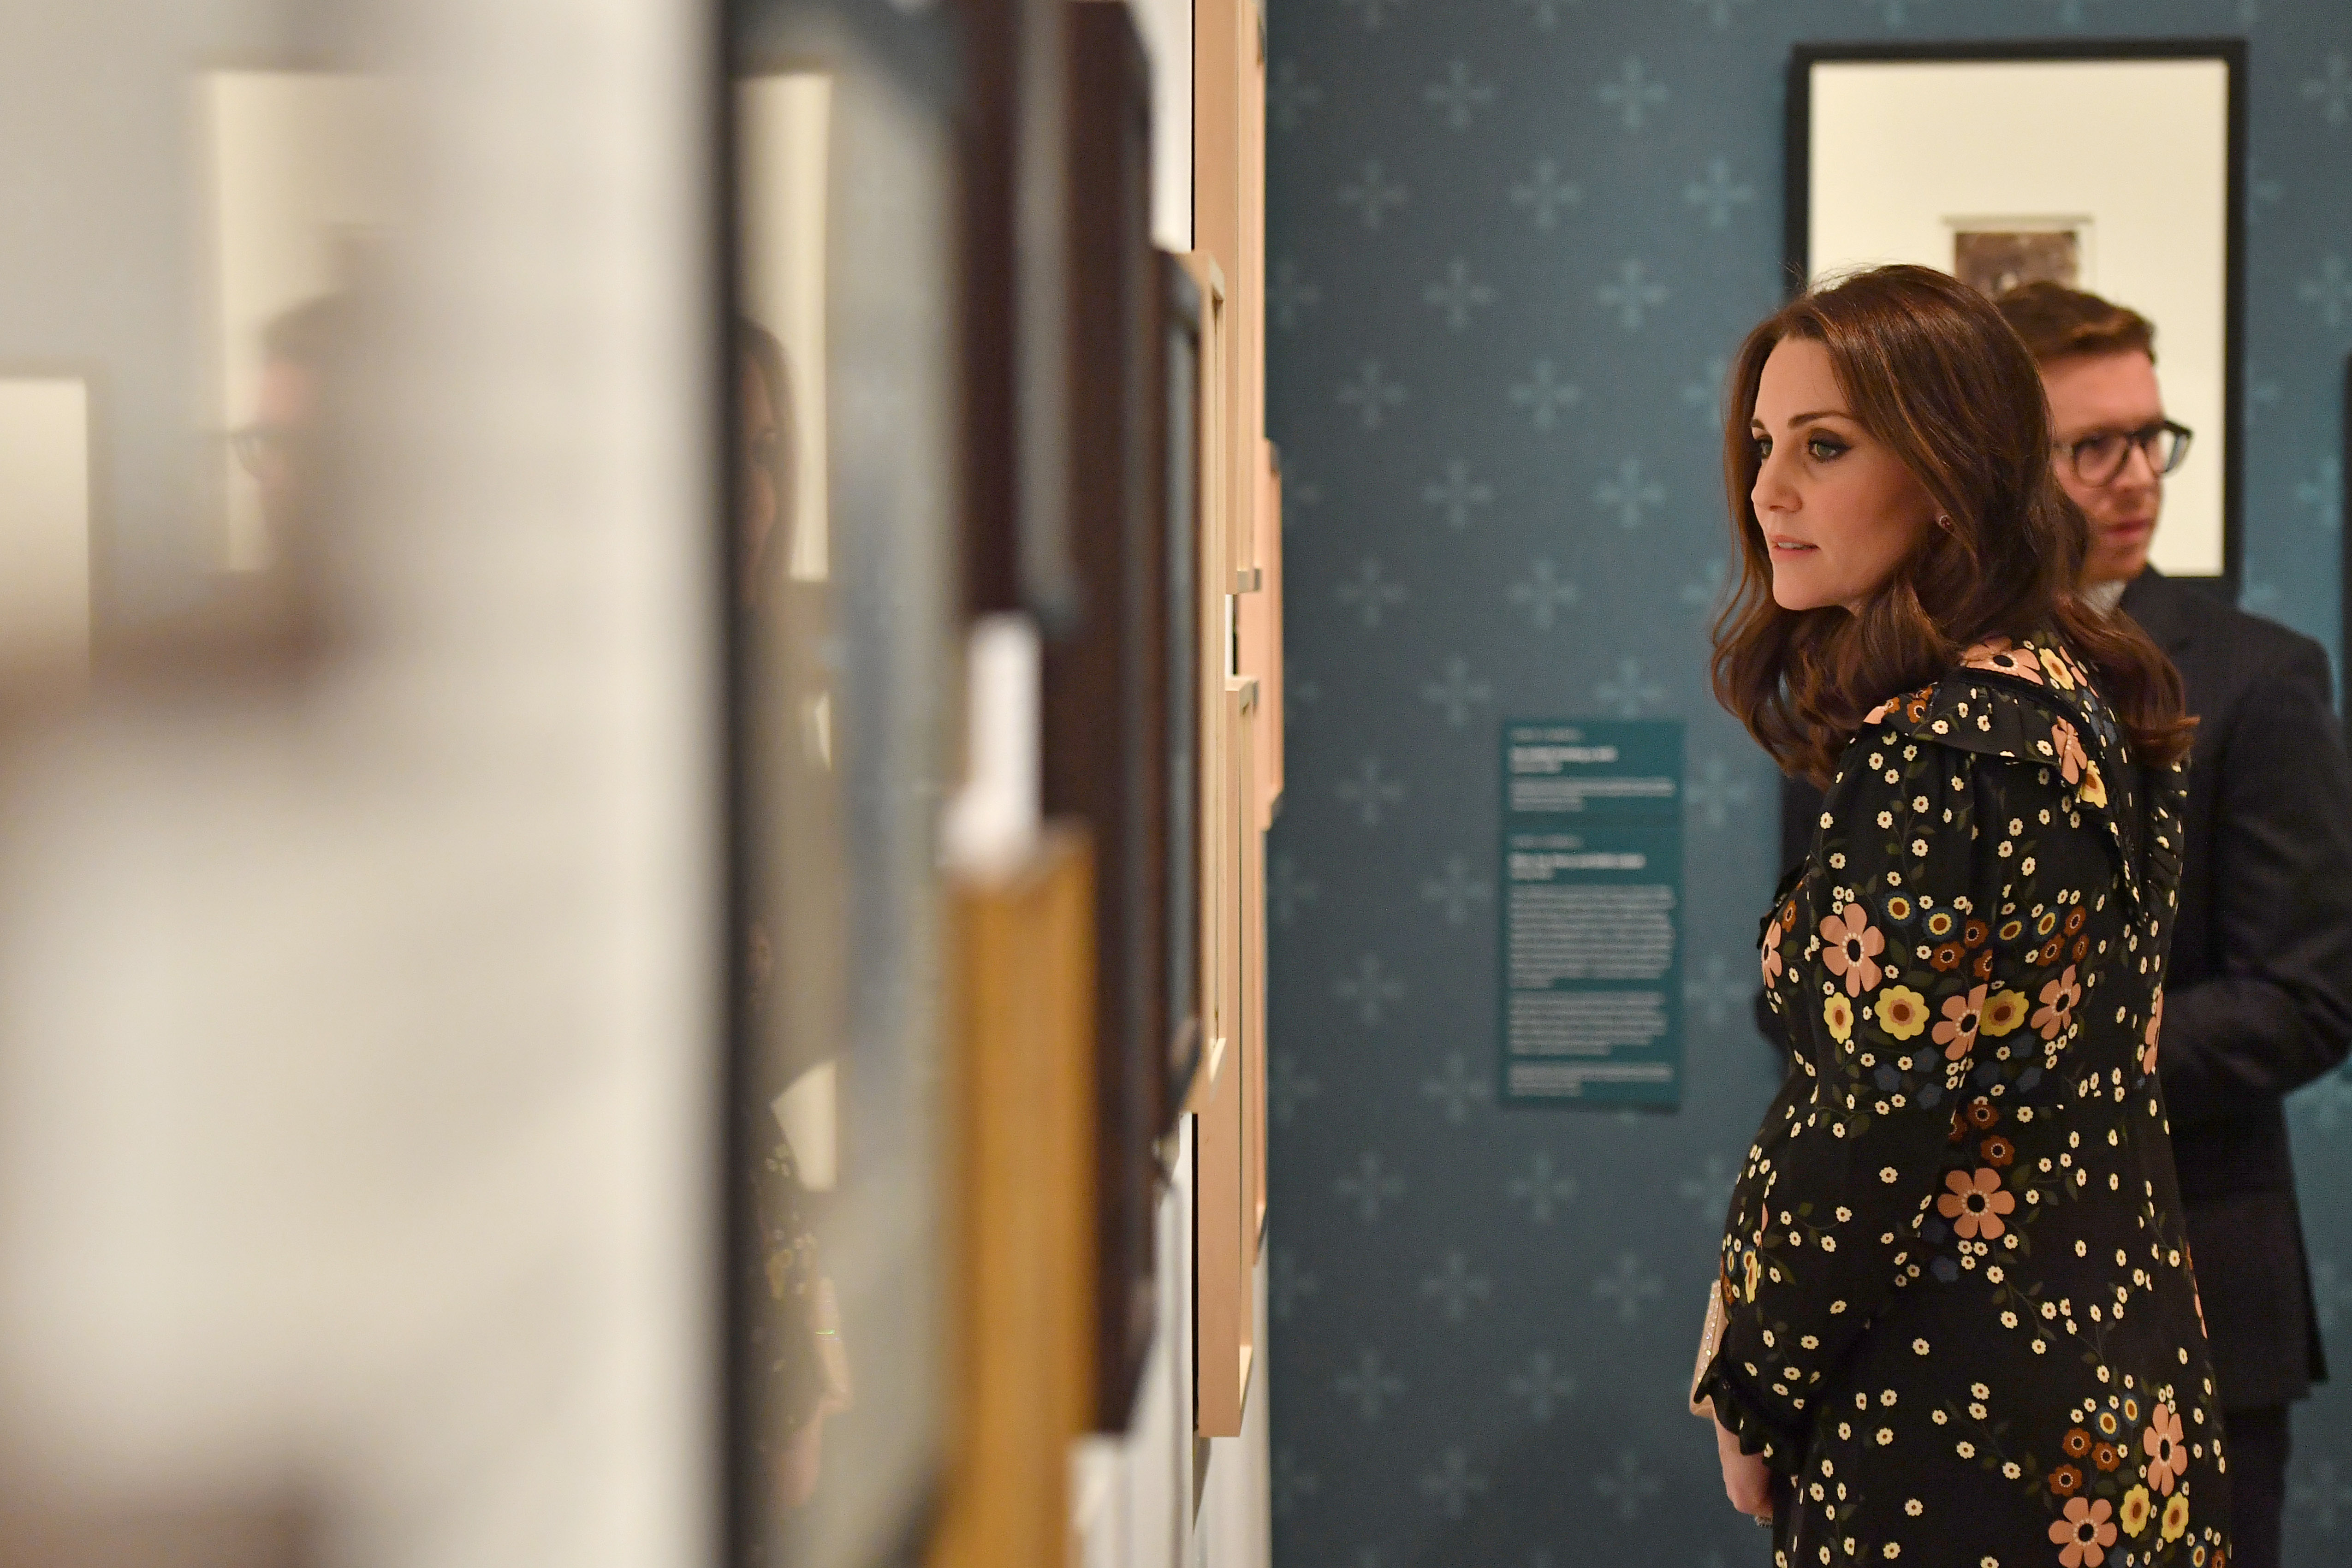 Catherine, Duchess of Cambridge visits the 'Victorian Giants' exhibition at National Portrait Gallery on February 28, 2018 in London, England. (Photo by Ben Stansall - Pool/Getty Images)